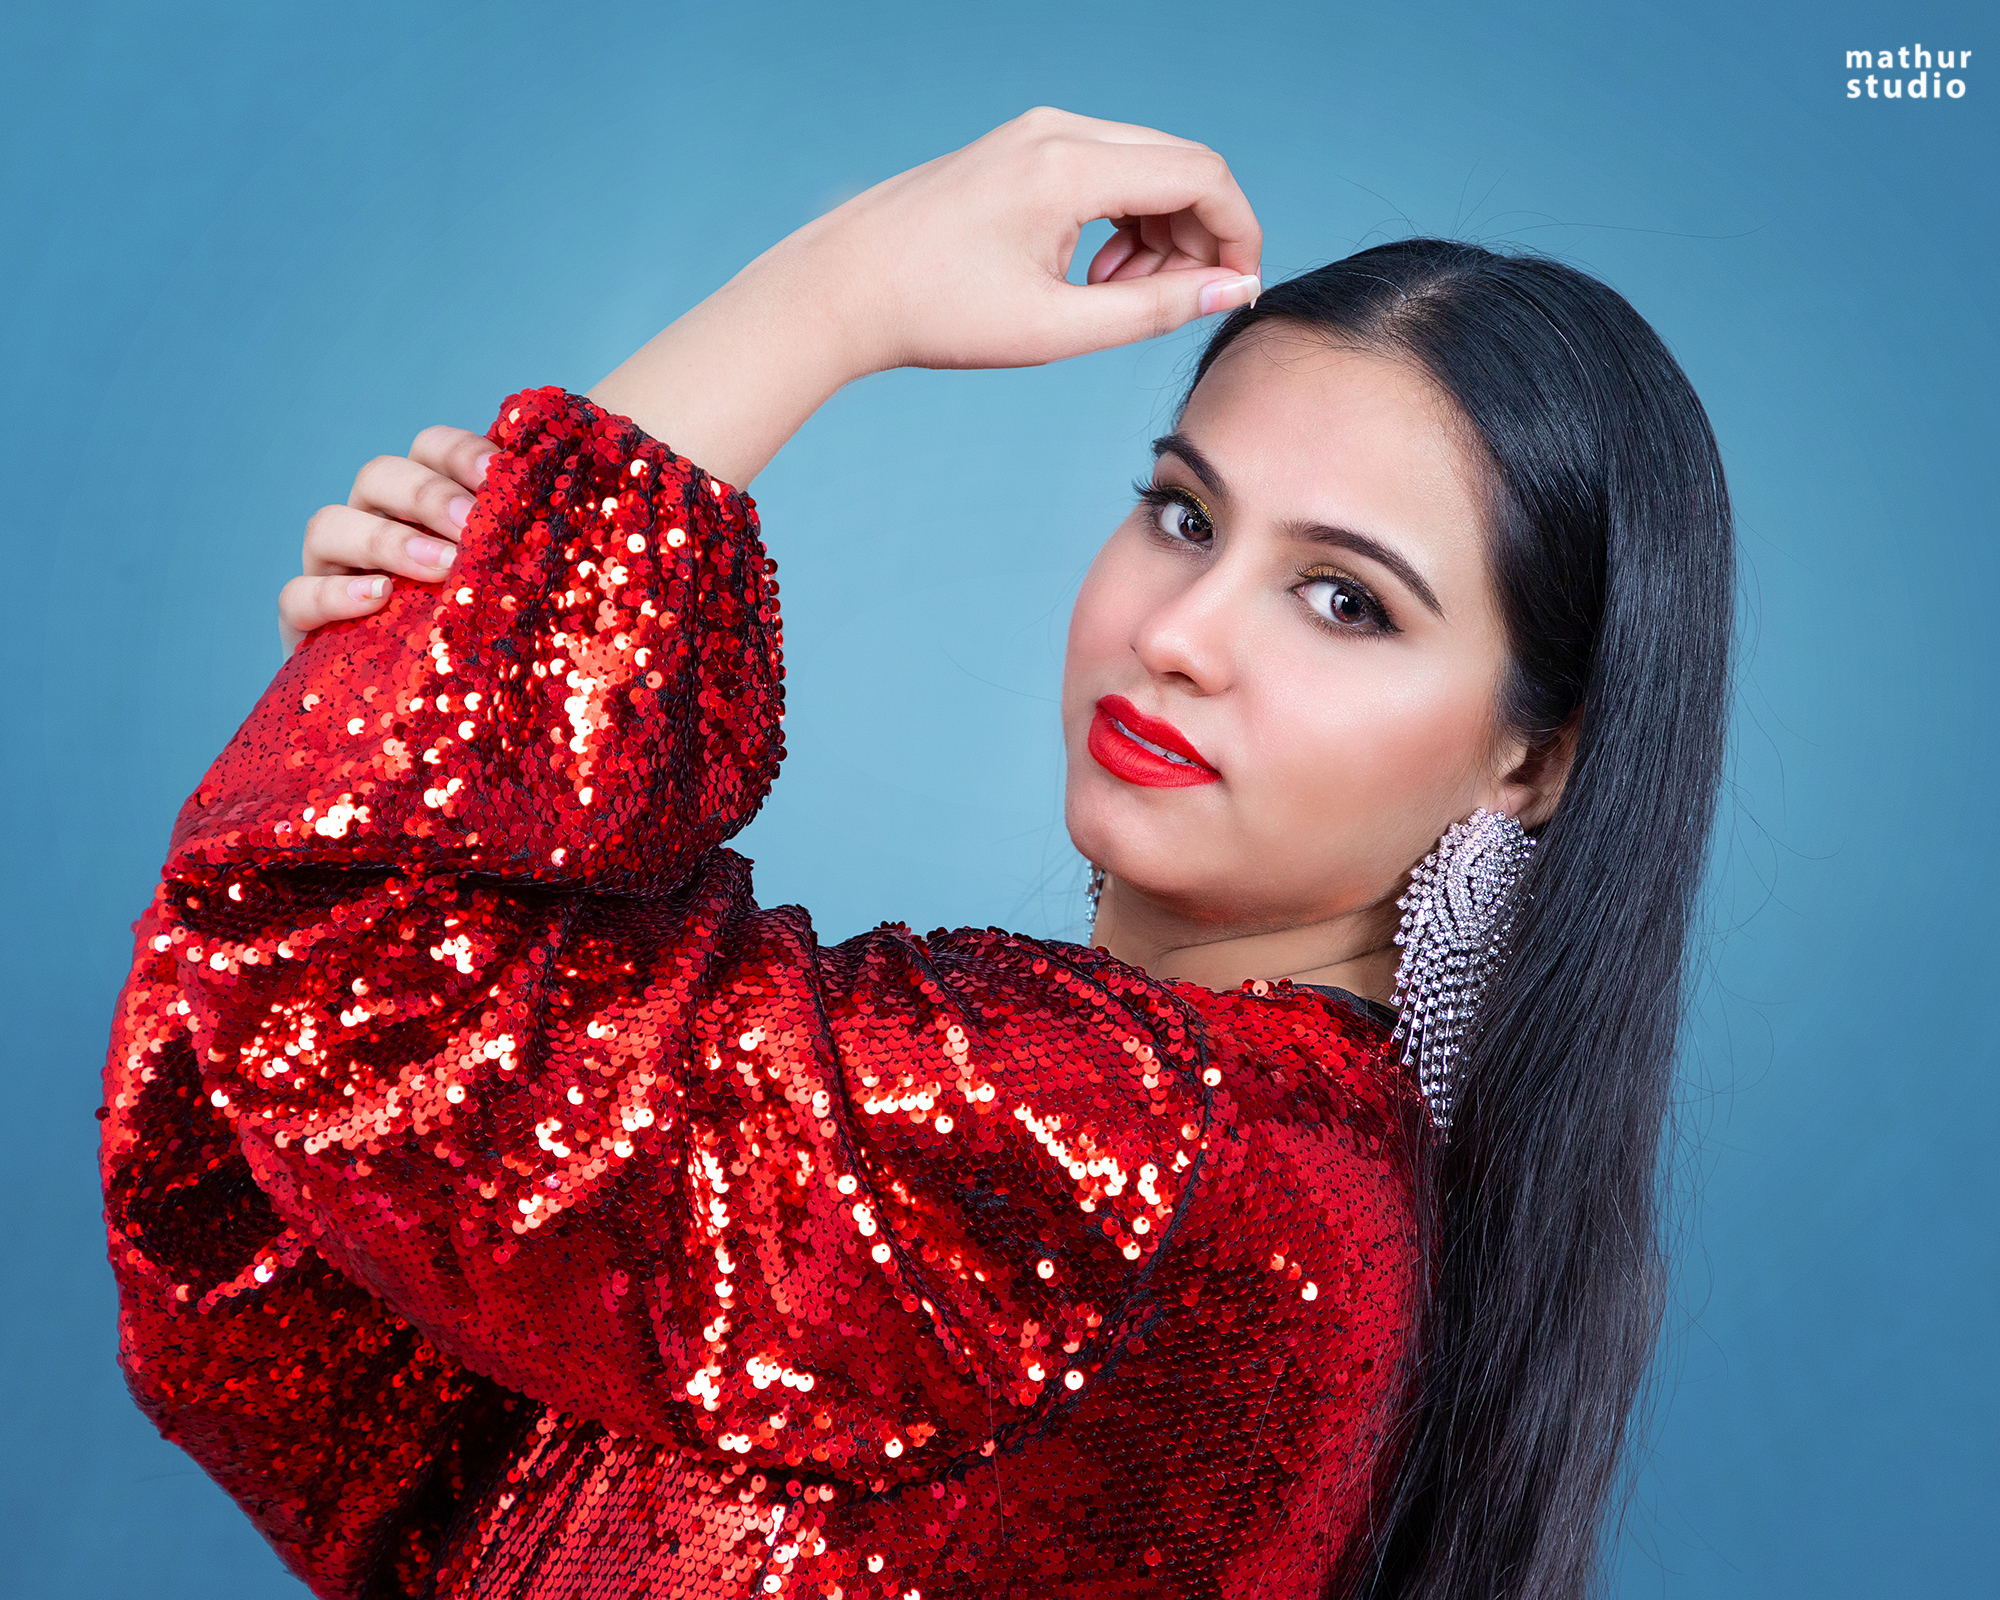 Model-Tanya-Saifi-did-a-special-photoshoot-on-her-special-day-for-her-fans